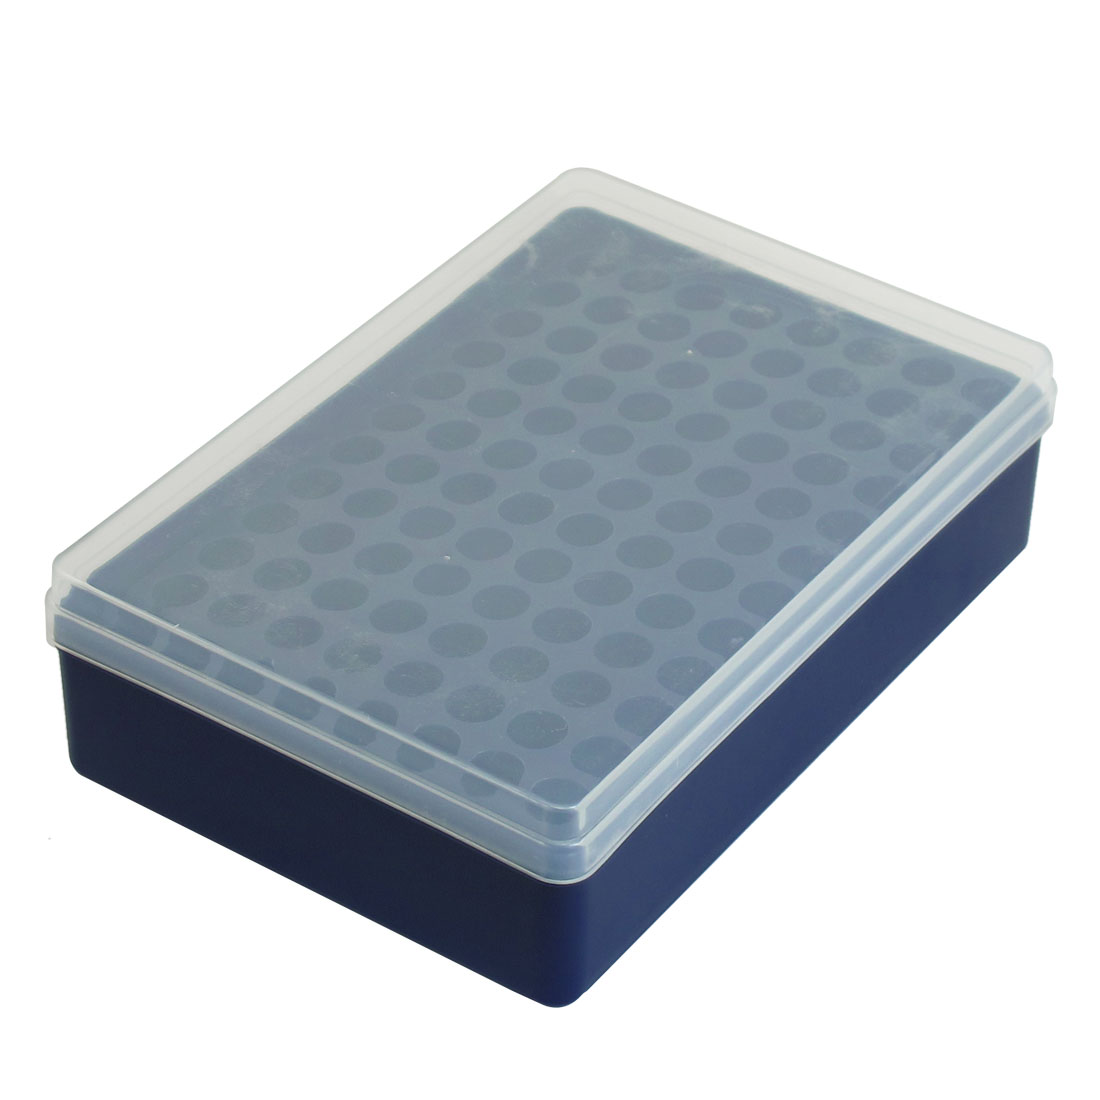 Round Shaped Slot 96 Compartments Dark Blue Plastic Ice Cube Mold Mould Tray